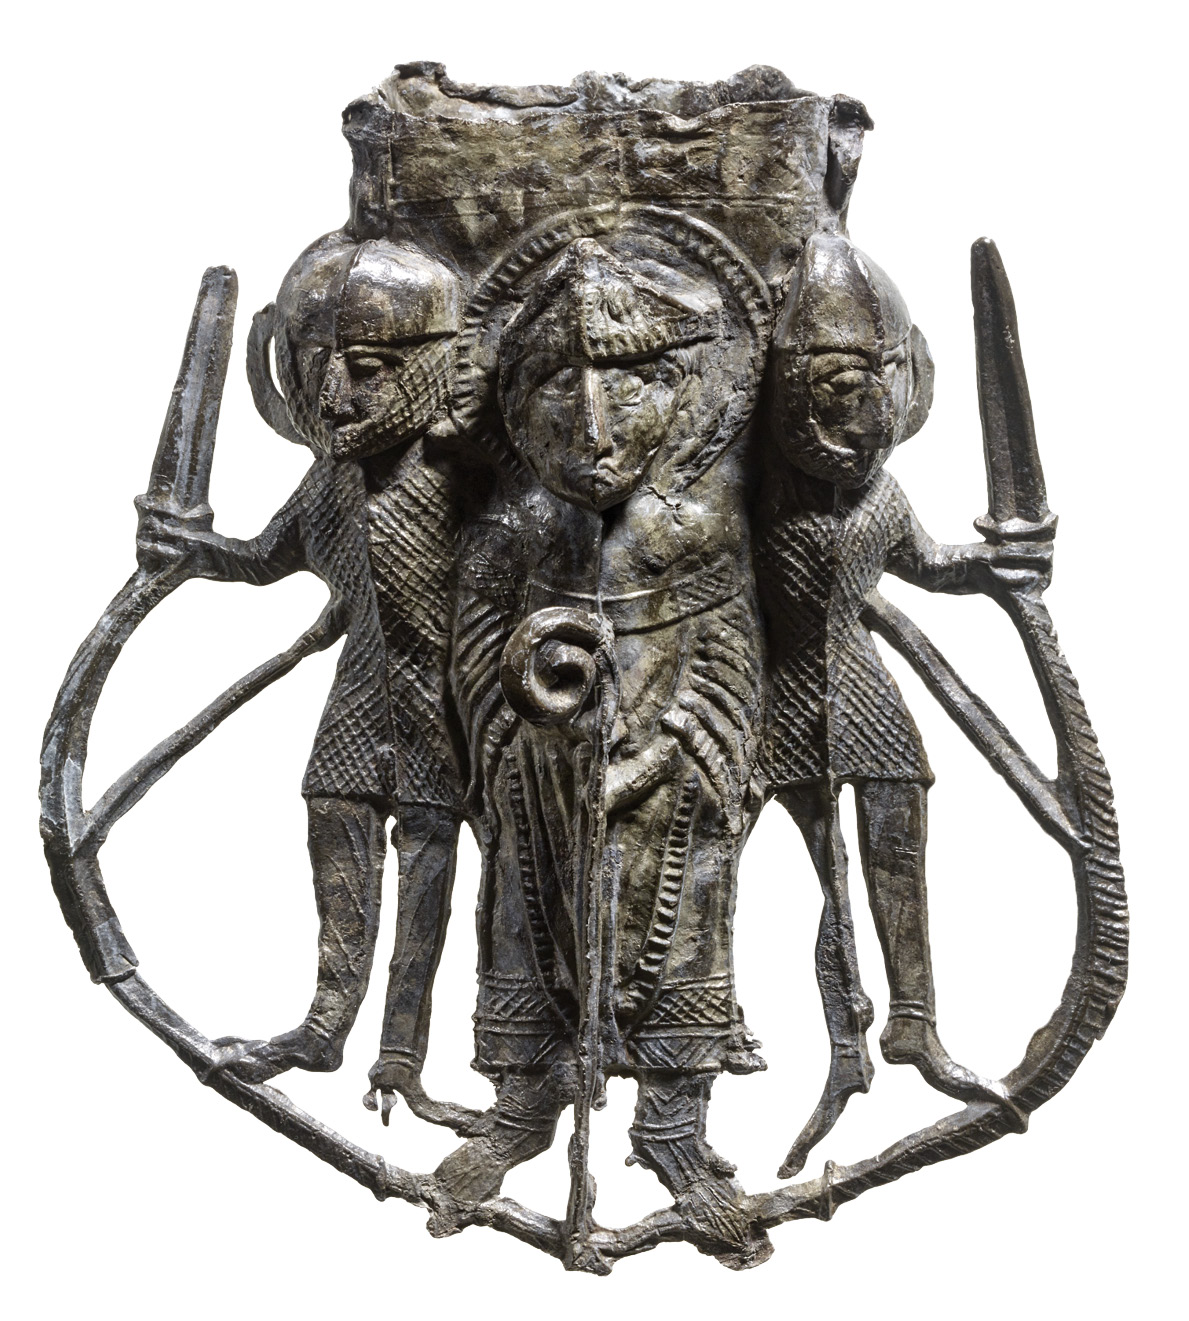 BELOW Ampulla, or flask, for St Thomas's Water, showing Becket between two knights, 13th century. Lead-tin alloy. Size: 10 x 8.7 x 2.8cm